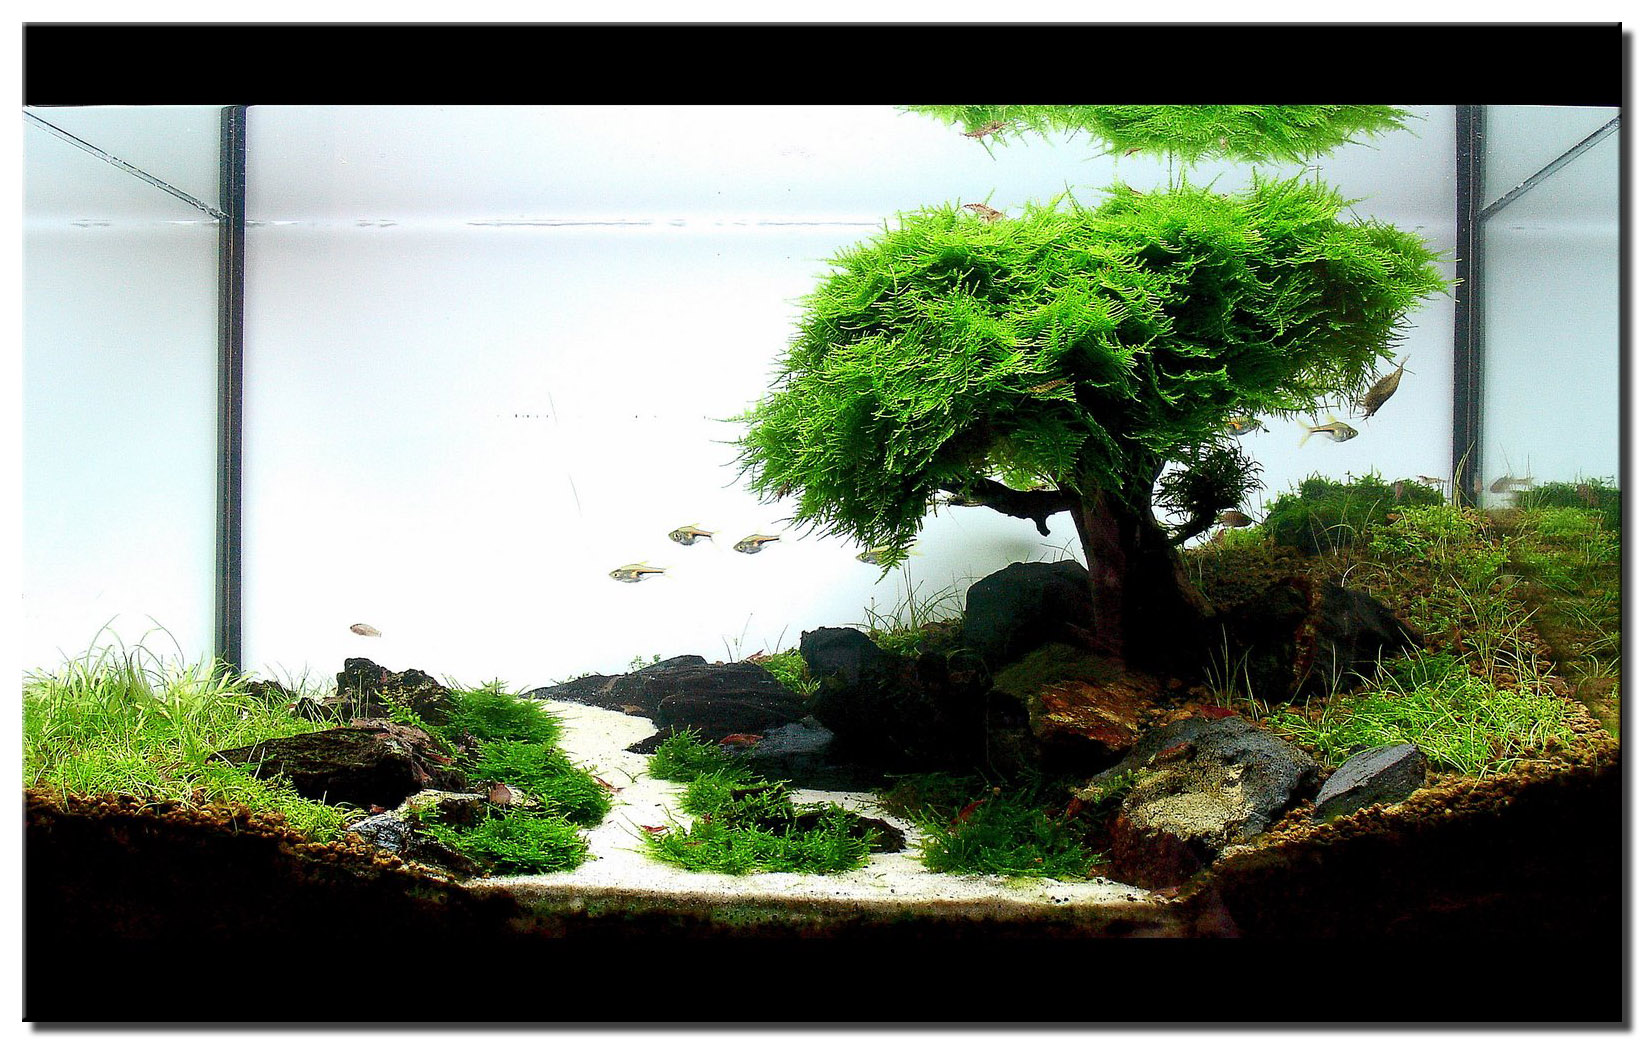 ... , Aquariums, Fishtanks, Aquarium Ideas, Trees, Aquascape, Aquascaping